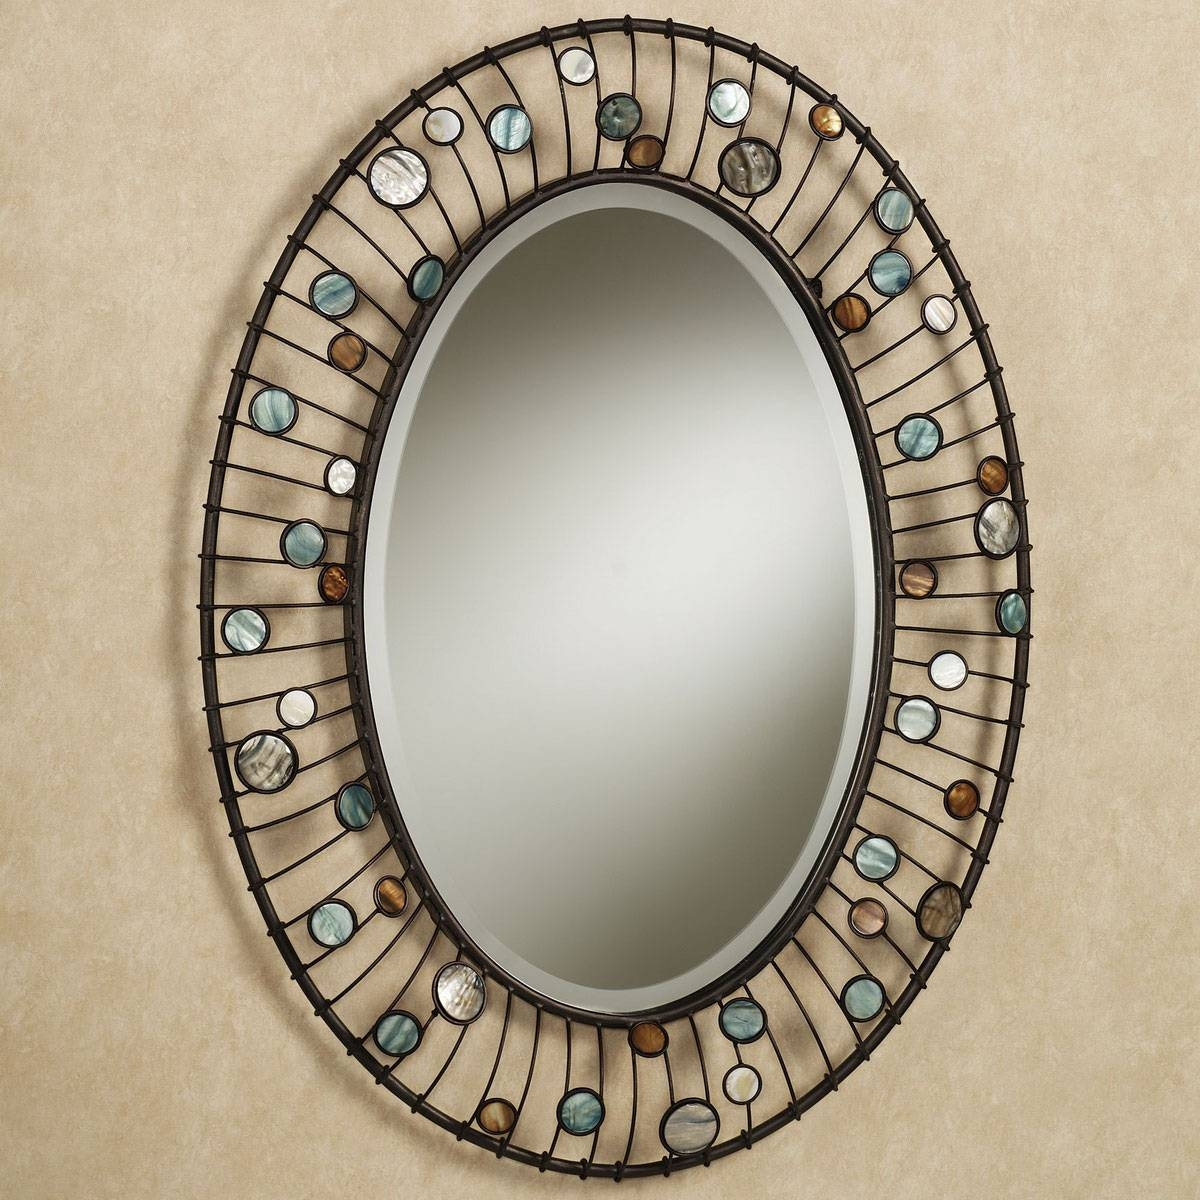 Bathroom: Bronze Framed Mirror | Oval Mirrors For Bathroom | Oval in Oval Mirrors for Walls (Image 5 of 25)